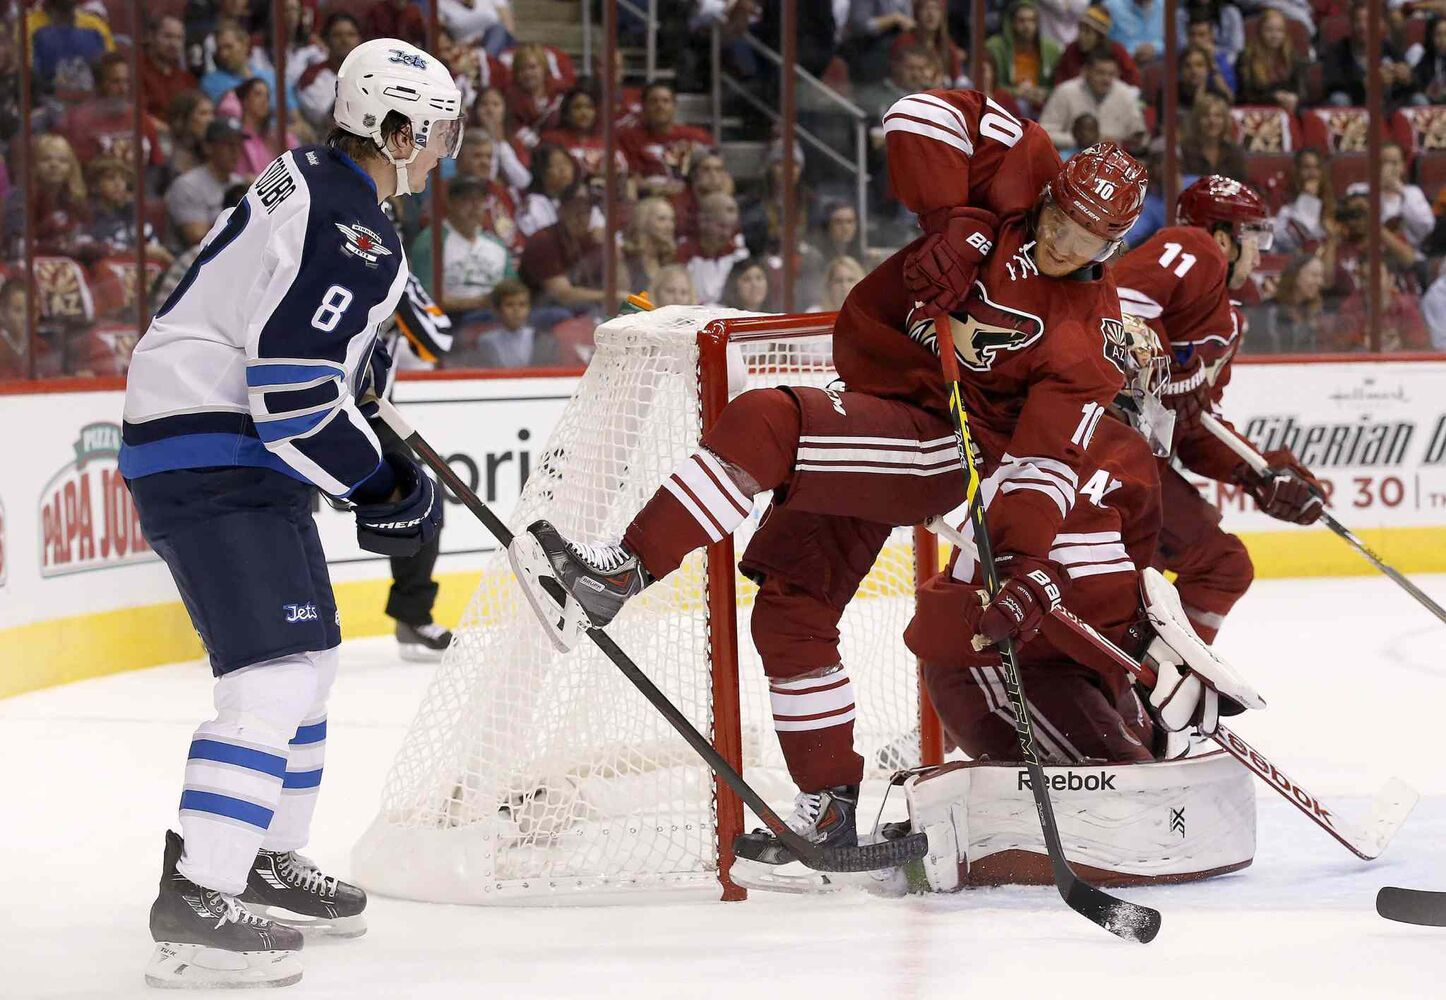 Arizona Coyotes' Martin Erat (10), of the Czech Republic, gets tripped up by Winnipeg Jets' Jacob Trouba (8) during the first period of an NHL hockey game Thursday. (Ross D. Franklin / The Associated Press)